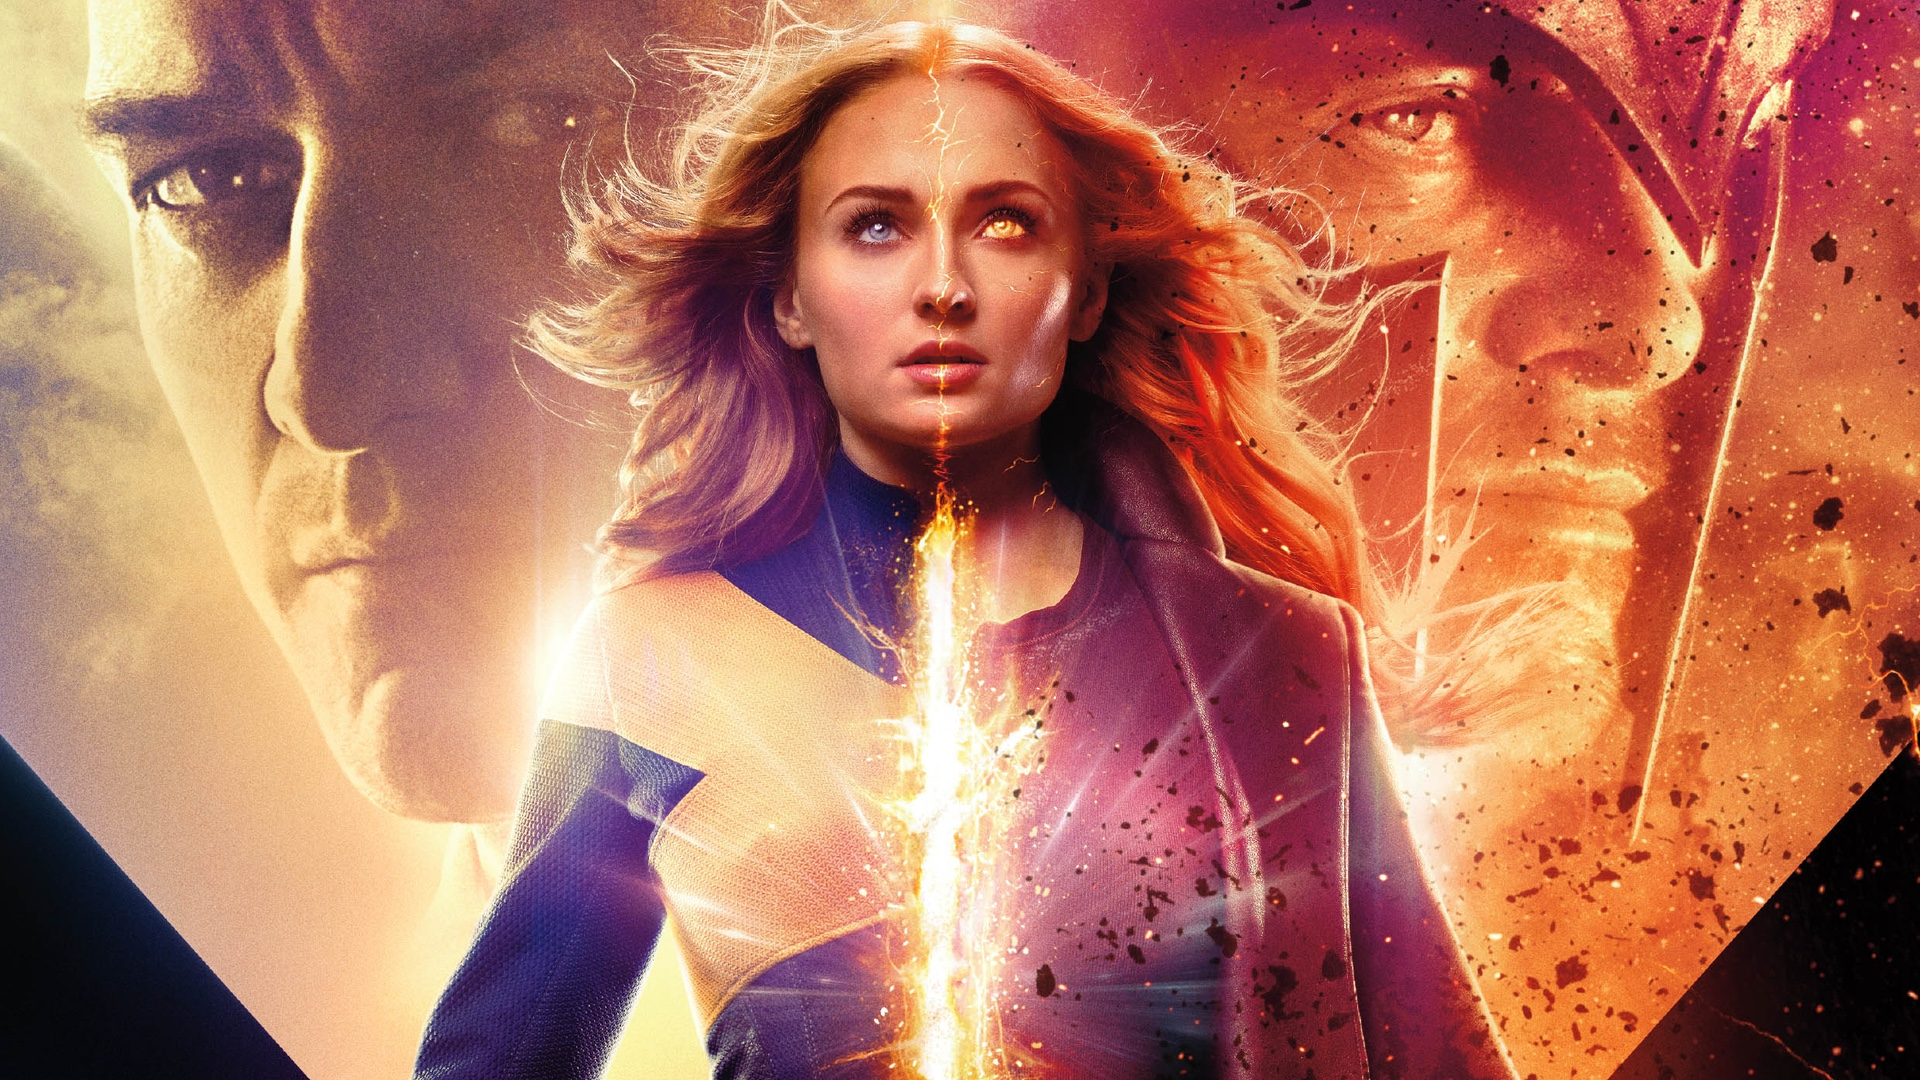 X-Men dark phoenix trailer release date cast